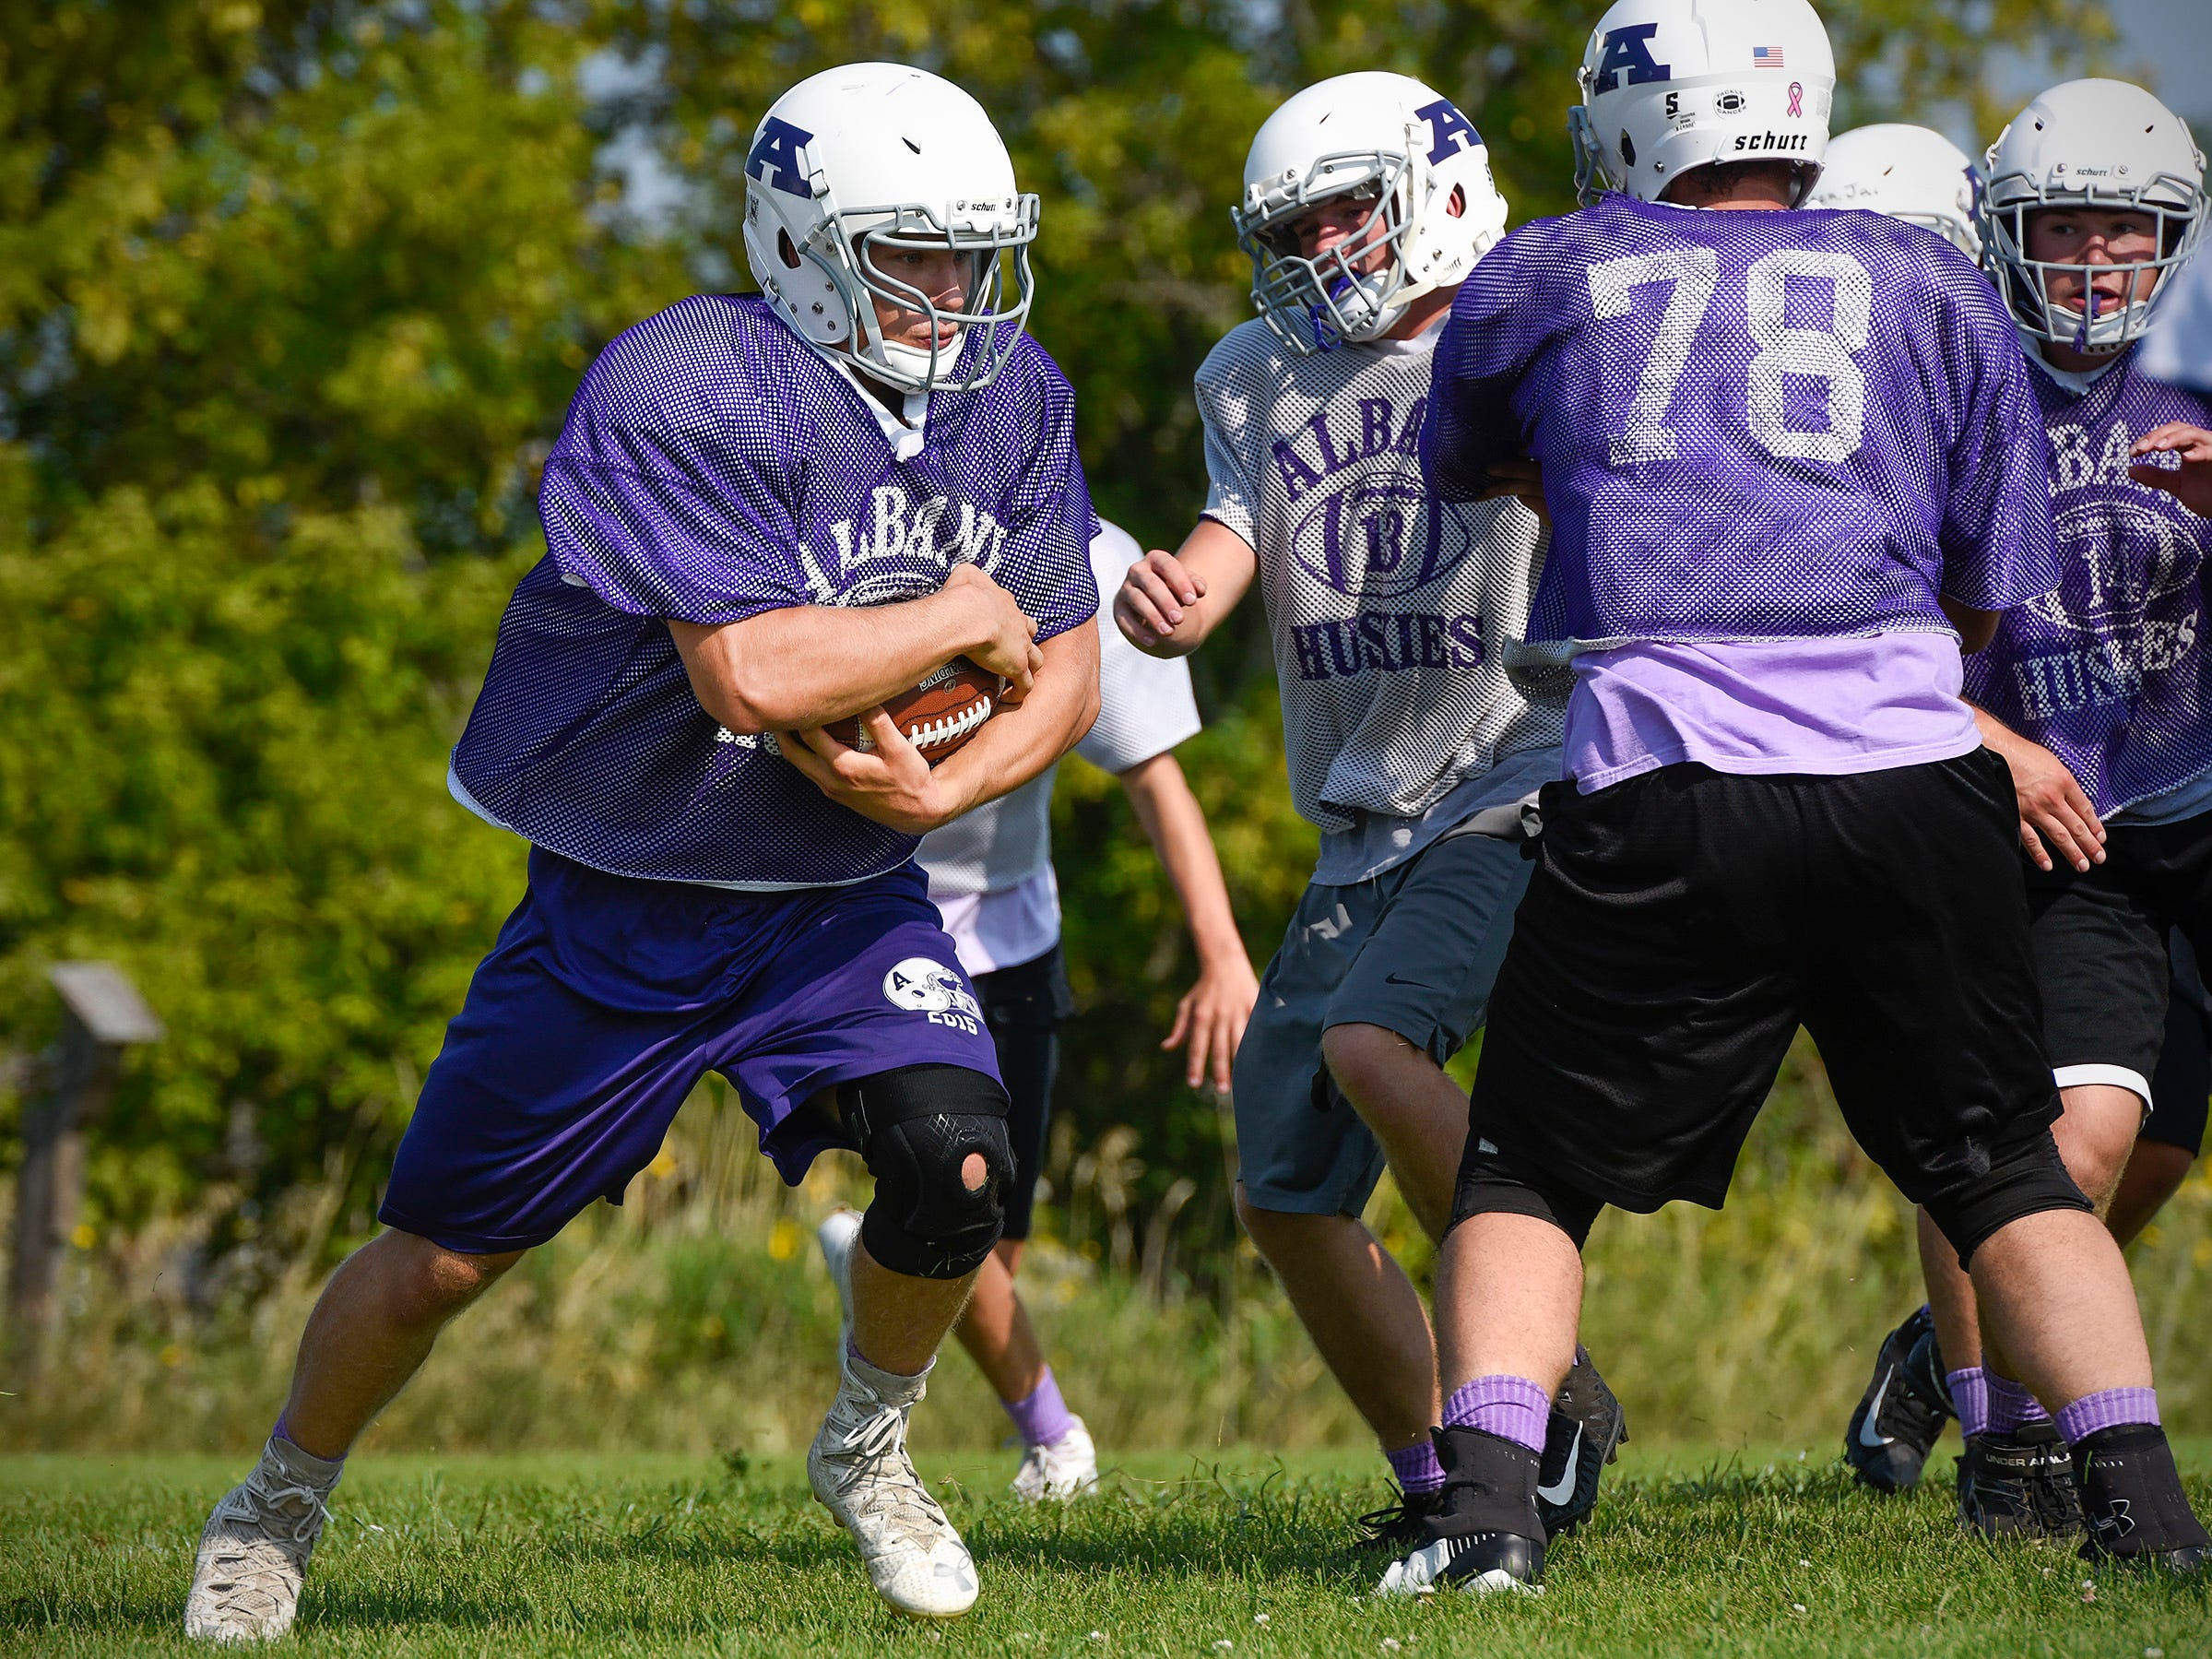 Albany Fullback Gabe Zierden gets room to run on a play Wednesday, Aug. 15, at the Albany High School.